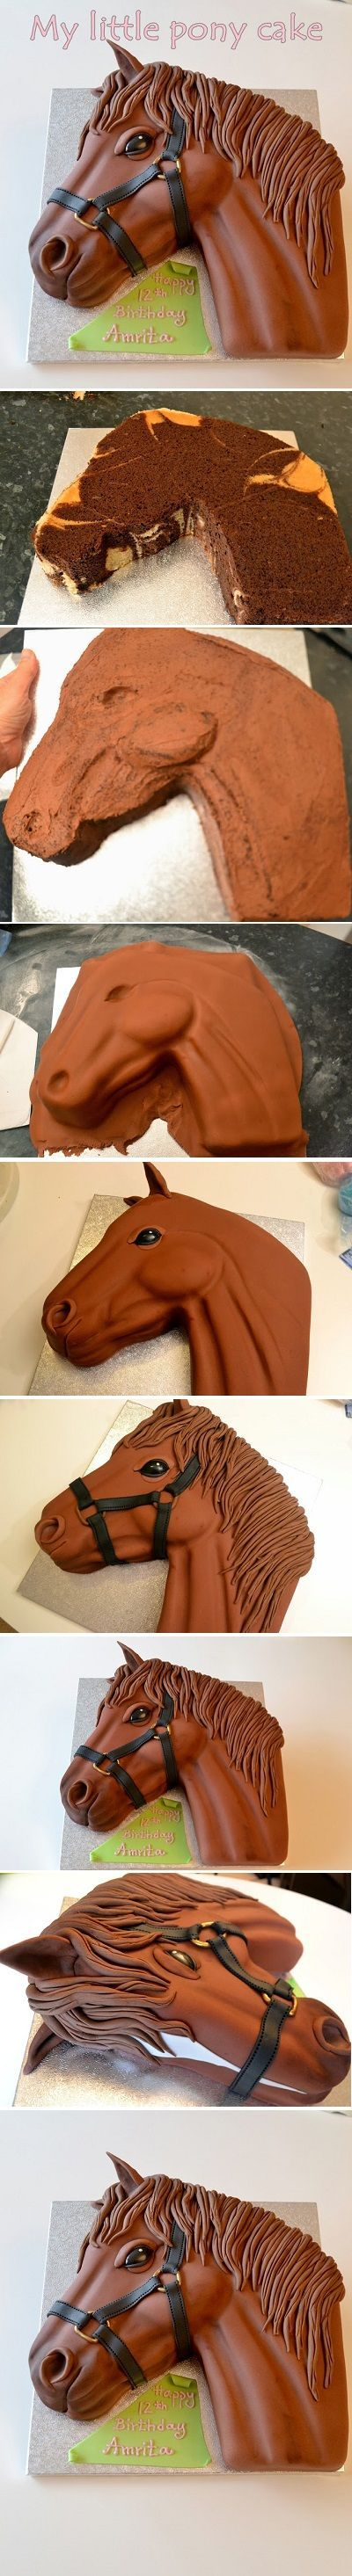 Horse Cake #coupon code nicesup123 gets 25% off at www.Provestra.com www.Skinception.com and www.leadingedgehealth.com